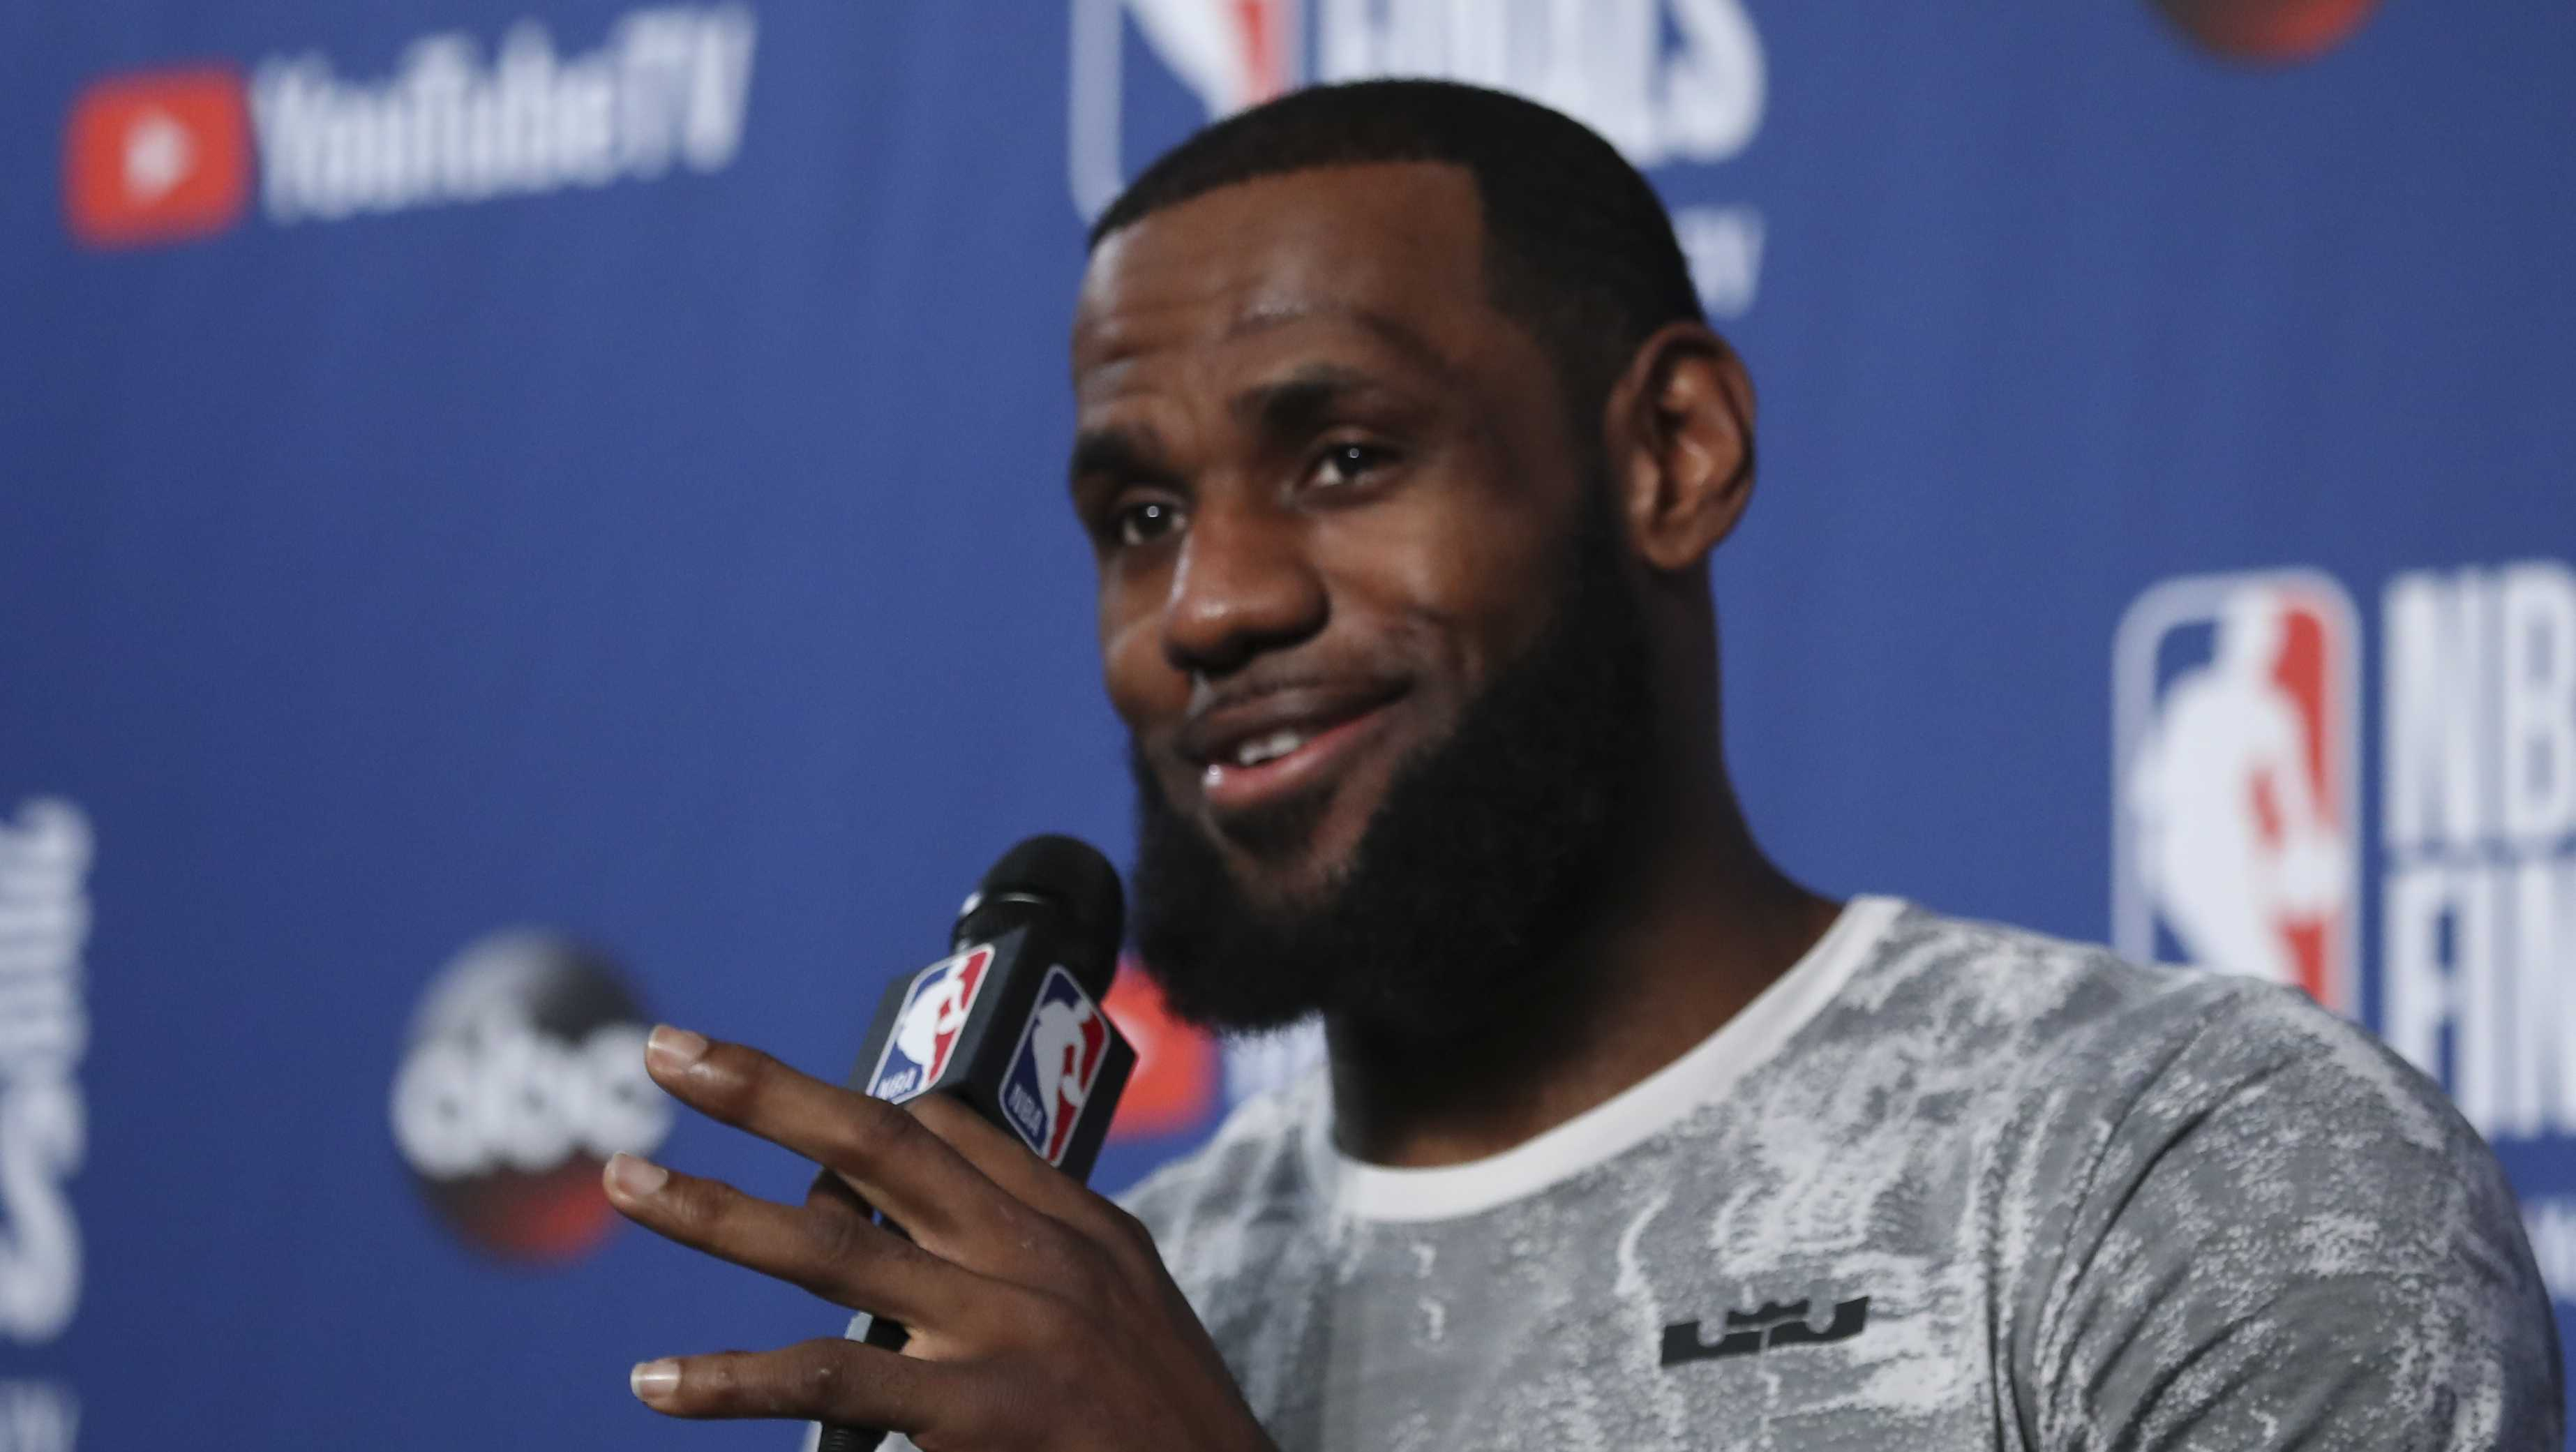 LeBron James takes questions at a press conference during the NBA Finals, Thursday, June 7, 2018, in Cleveland.